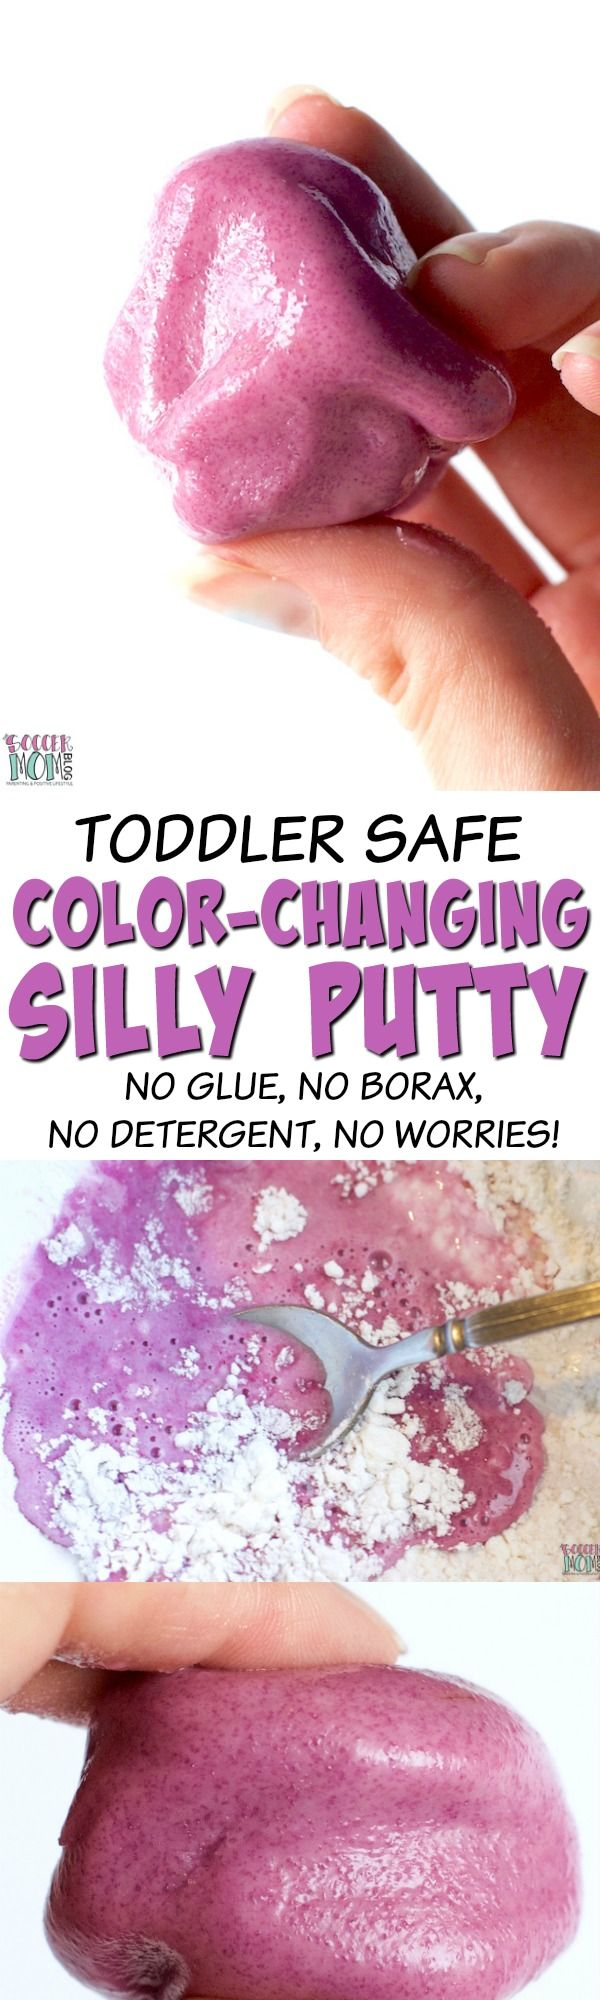 25 unique slime recipe ideas on pinterest diy slime glitter 3 ingredient color changing edible silly putty 3 ingredientsingredients to make slimeways ccuart Images